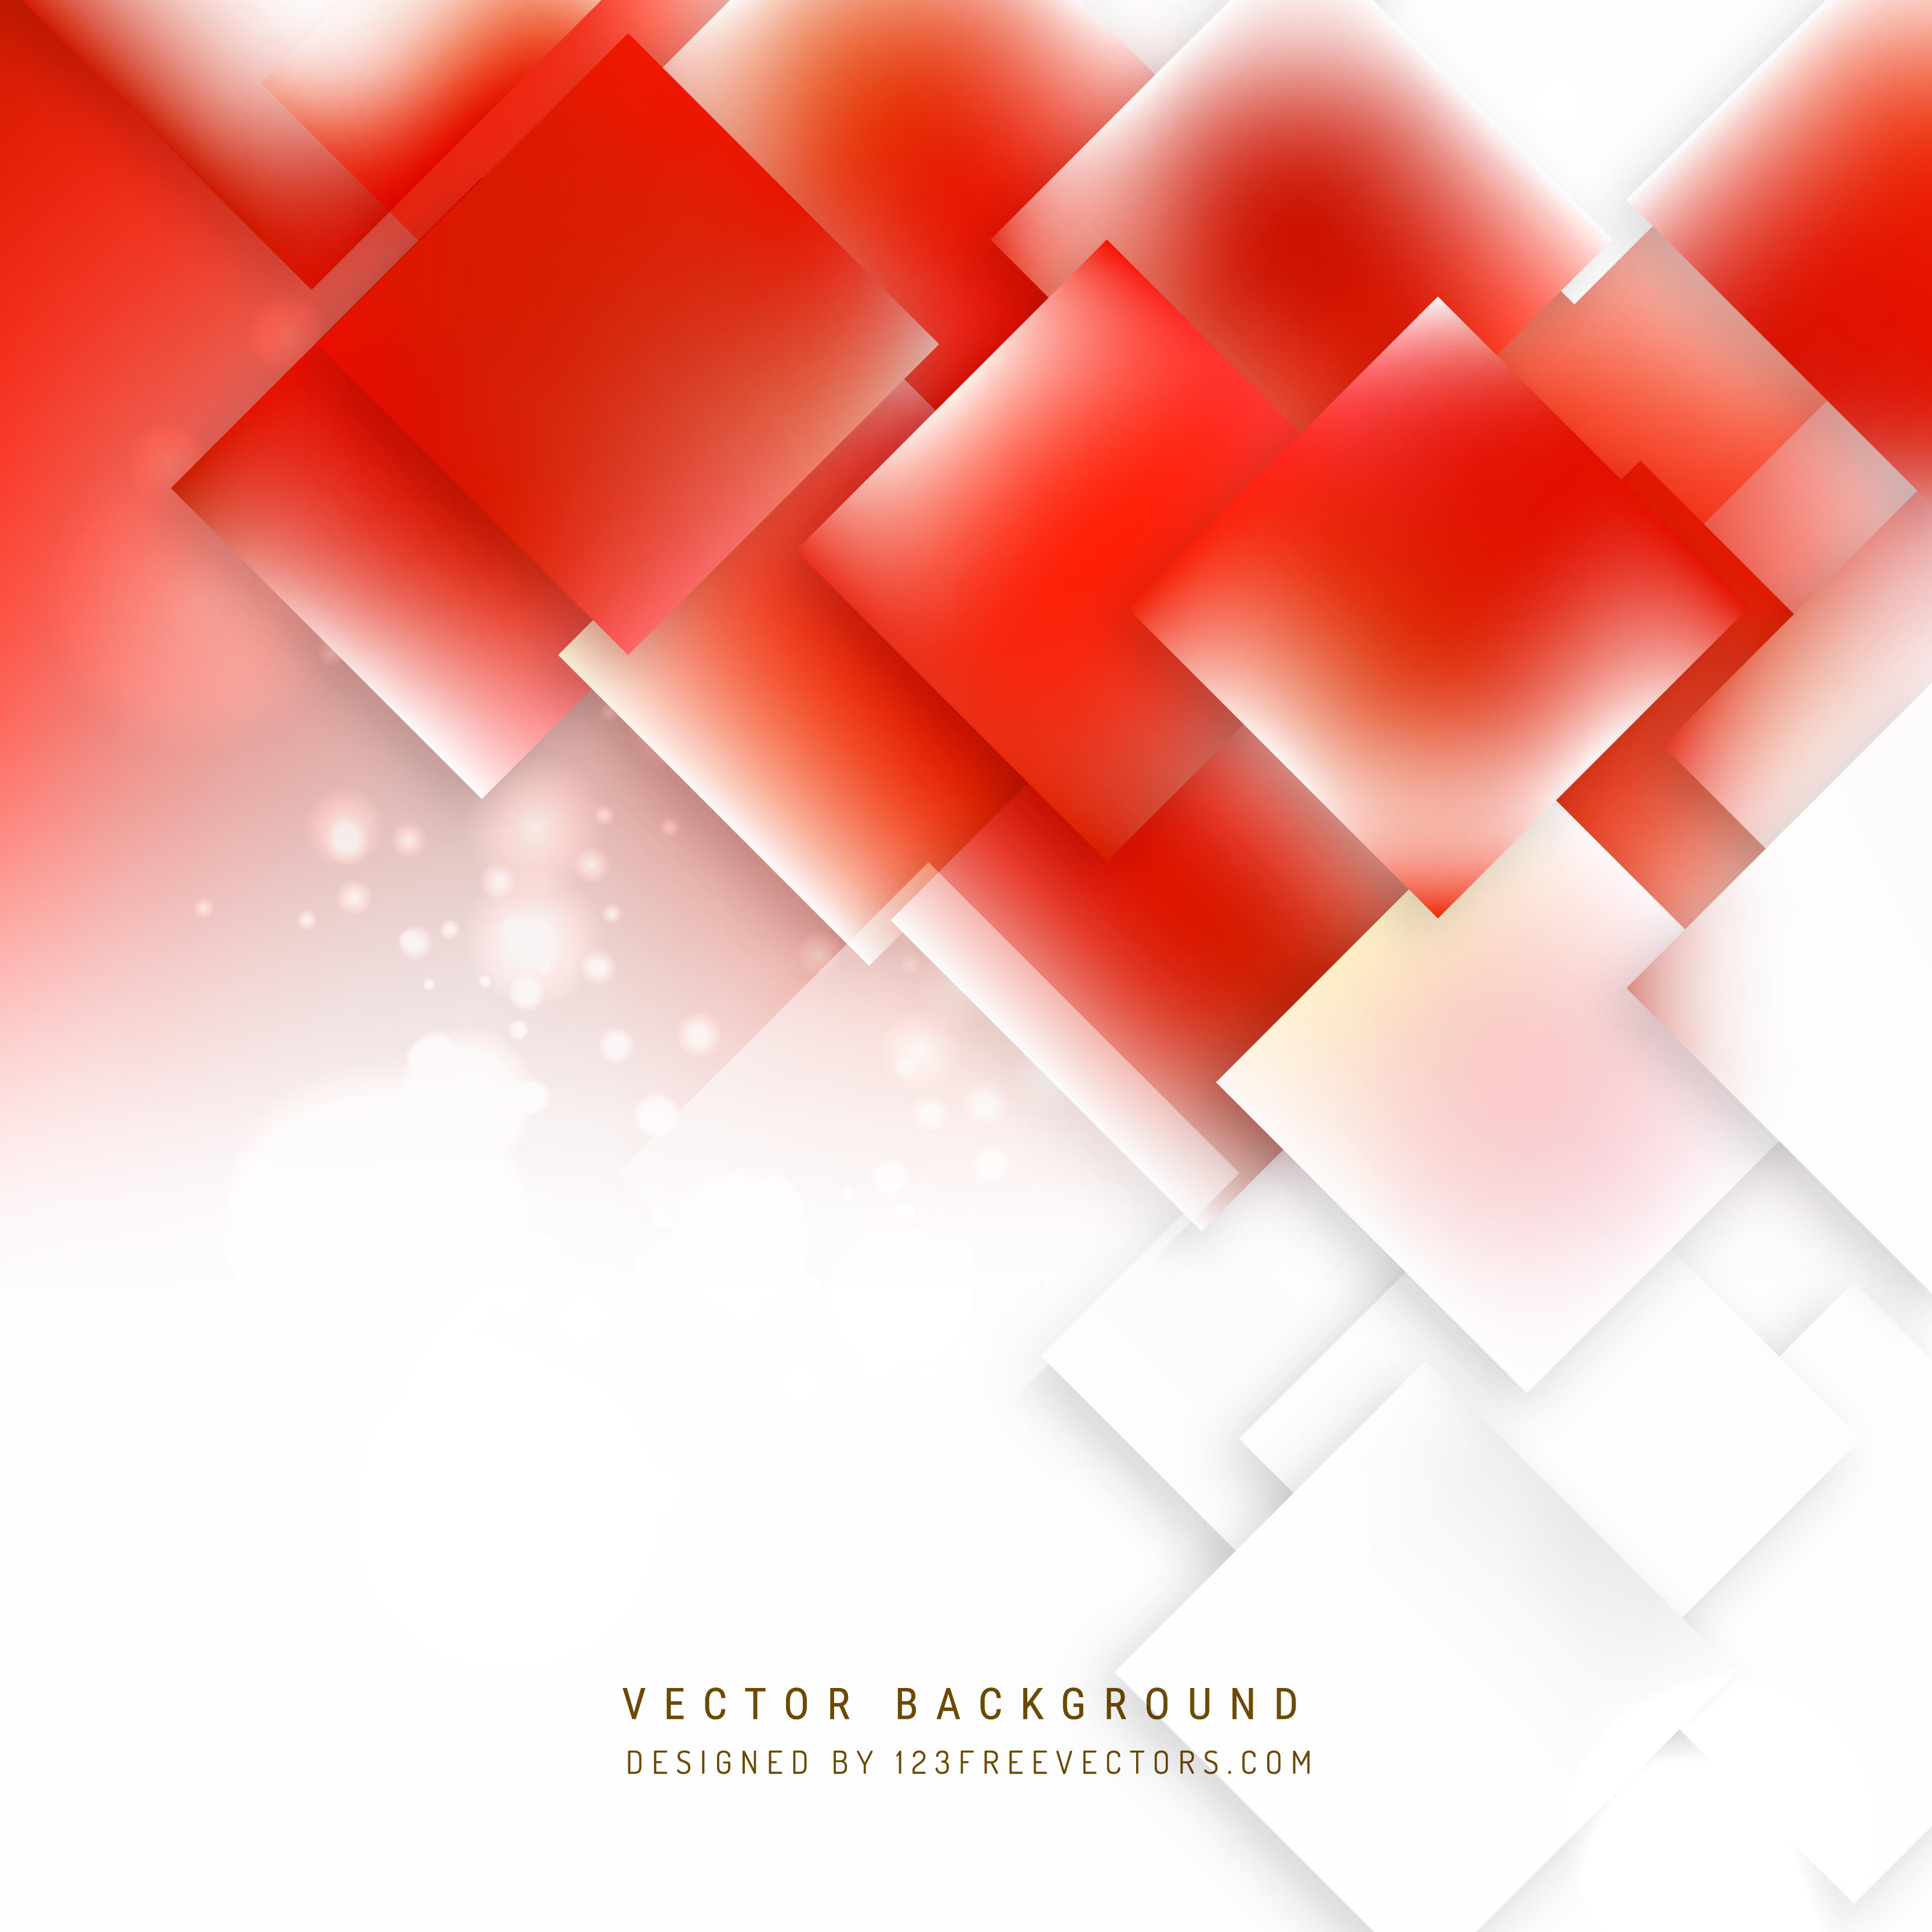 Abstract Red White Geometric Square Background